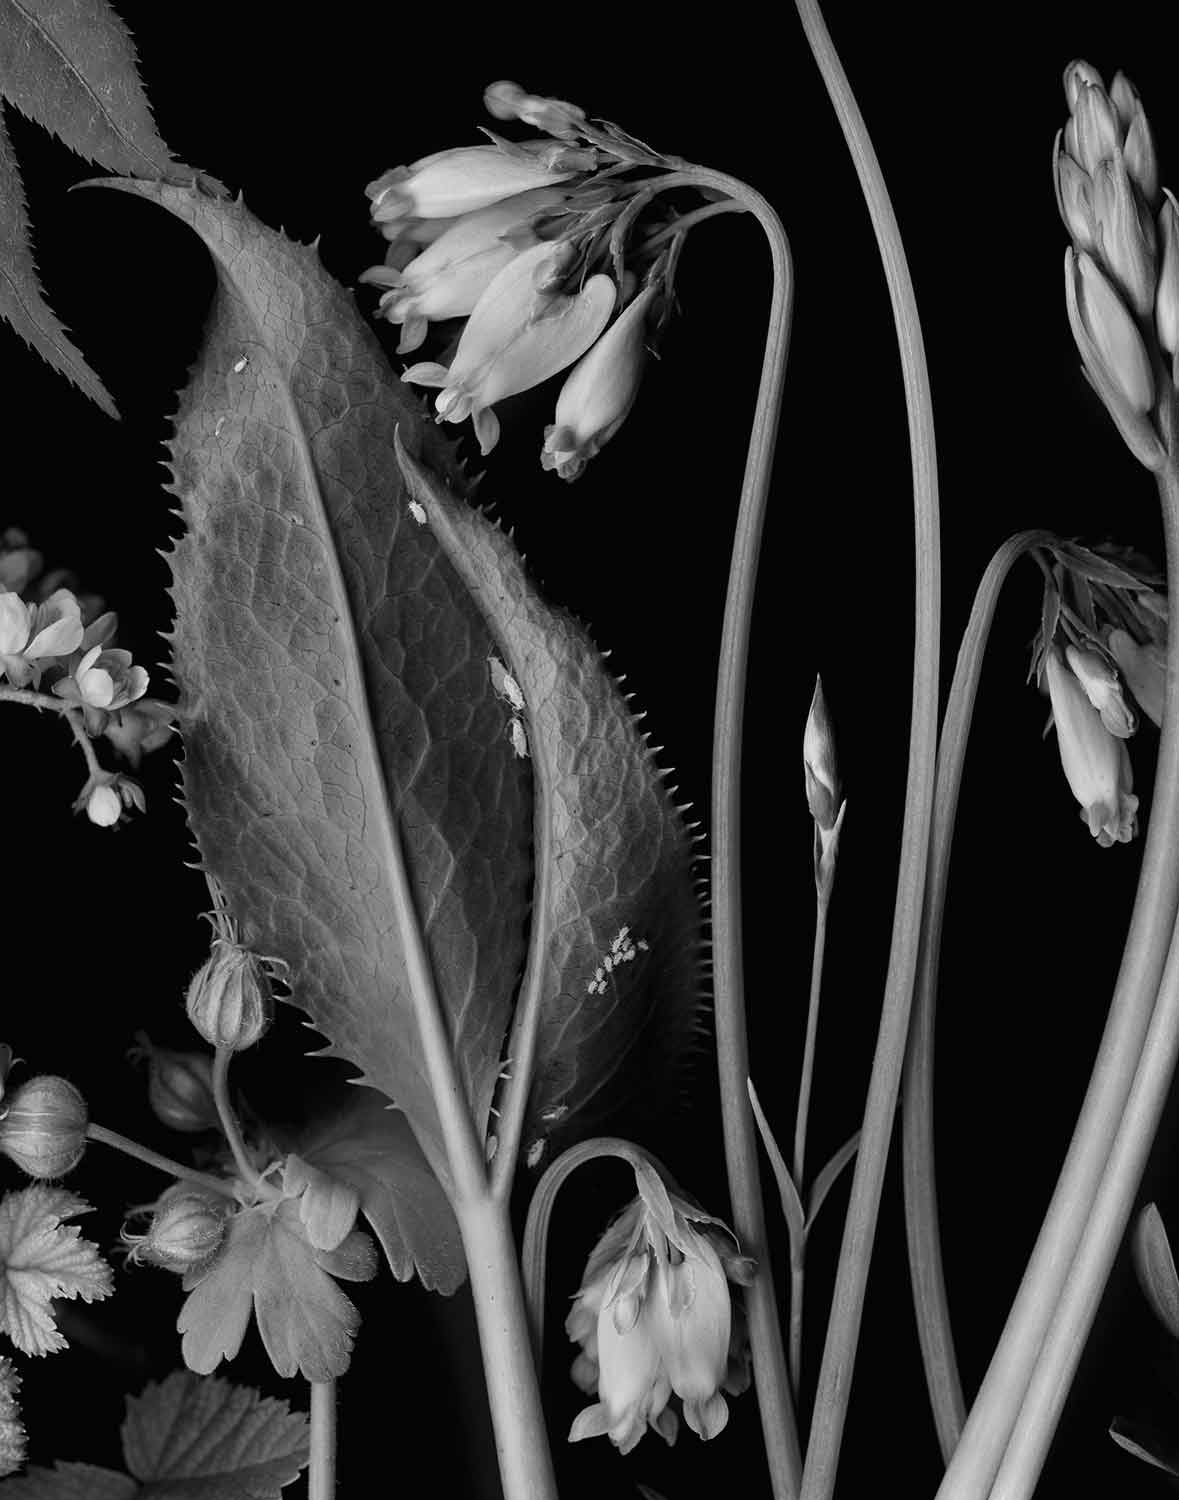 Blue Sky Gallery - My work was selected by juror Katherine Ware for the 2016 Northwest Photography Viewing Drawers, an exhibit of ten black and white works that will be available for viewing for one year. The theme that unifies this ten image edit is